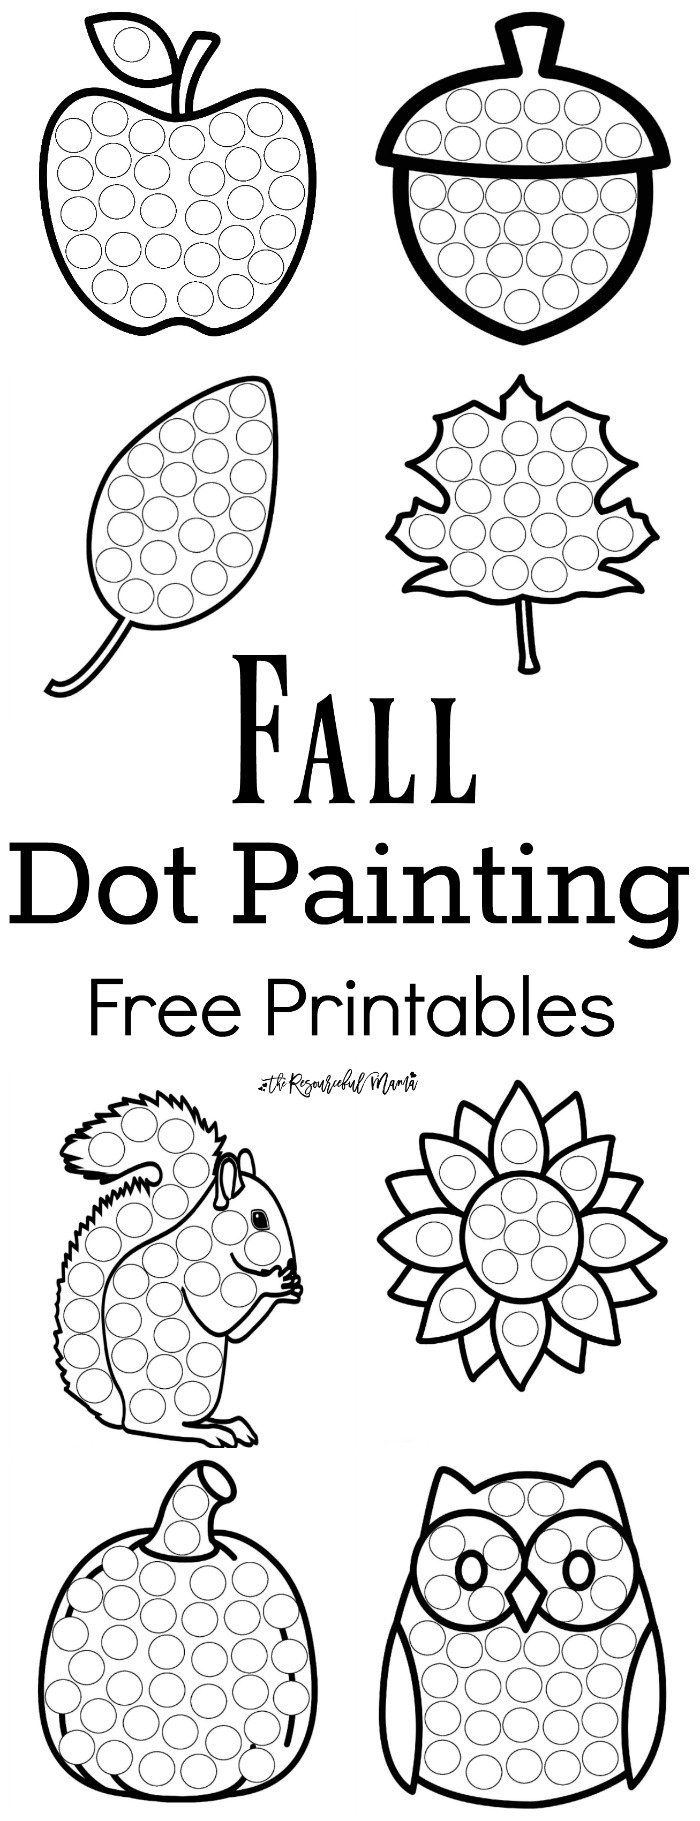 small resolution of these fall dot painting worksheets are a fun mess free painting activity for young kids that work on hand eye coordination and fine motor skills